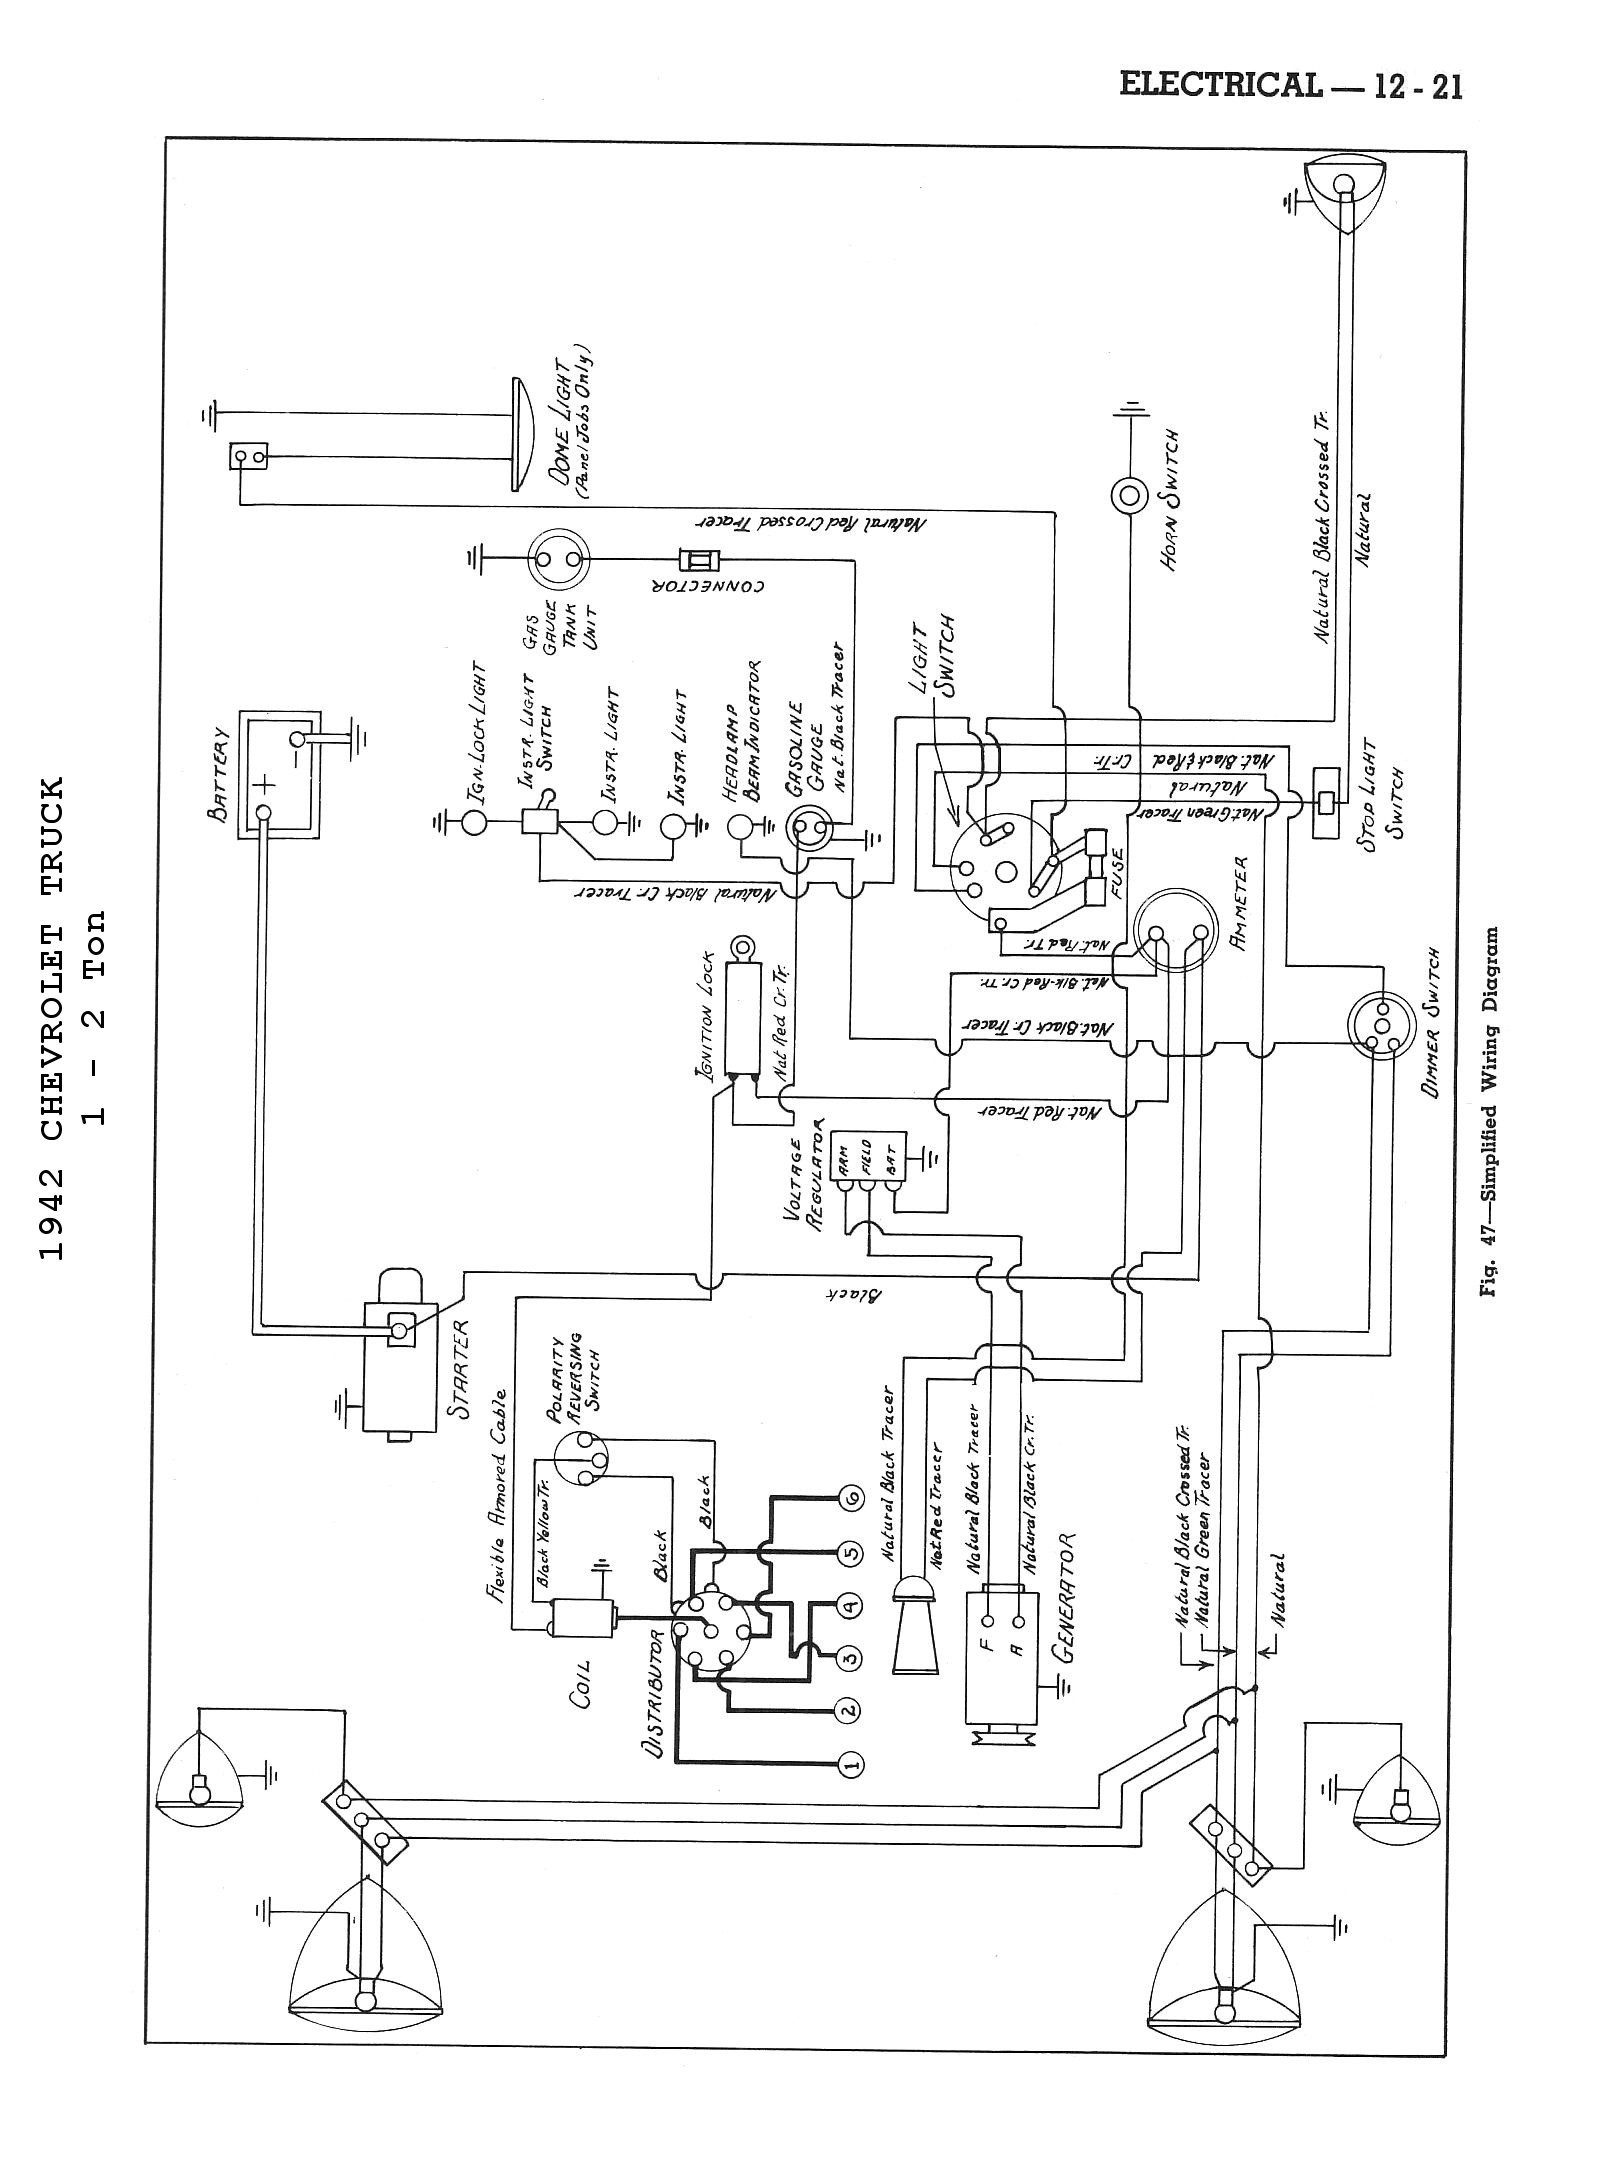 55 Chevy Dash Wiring Diagram - Wiring Diagrams Folder on